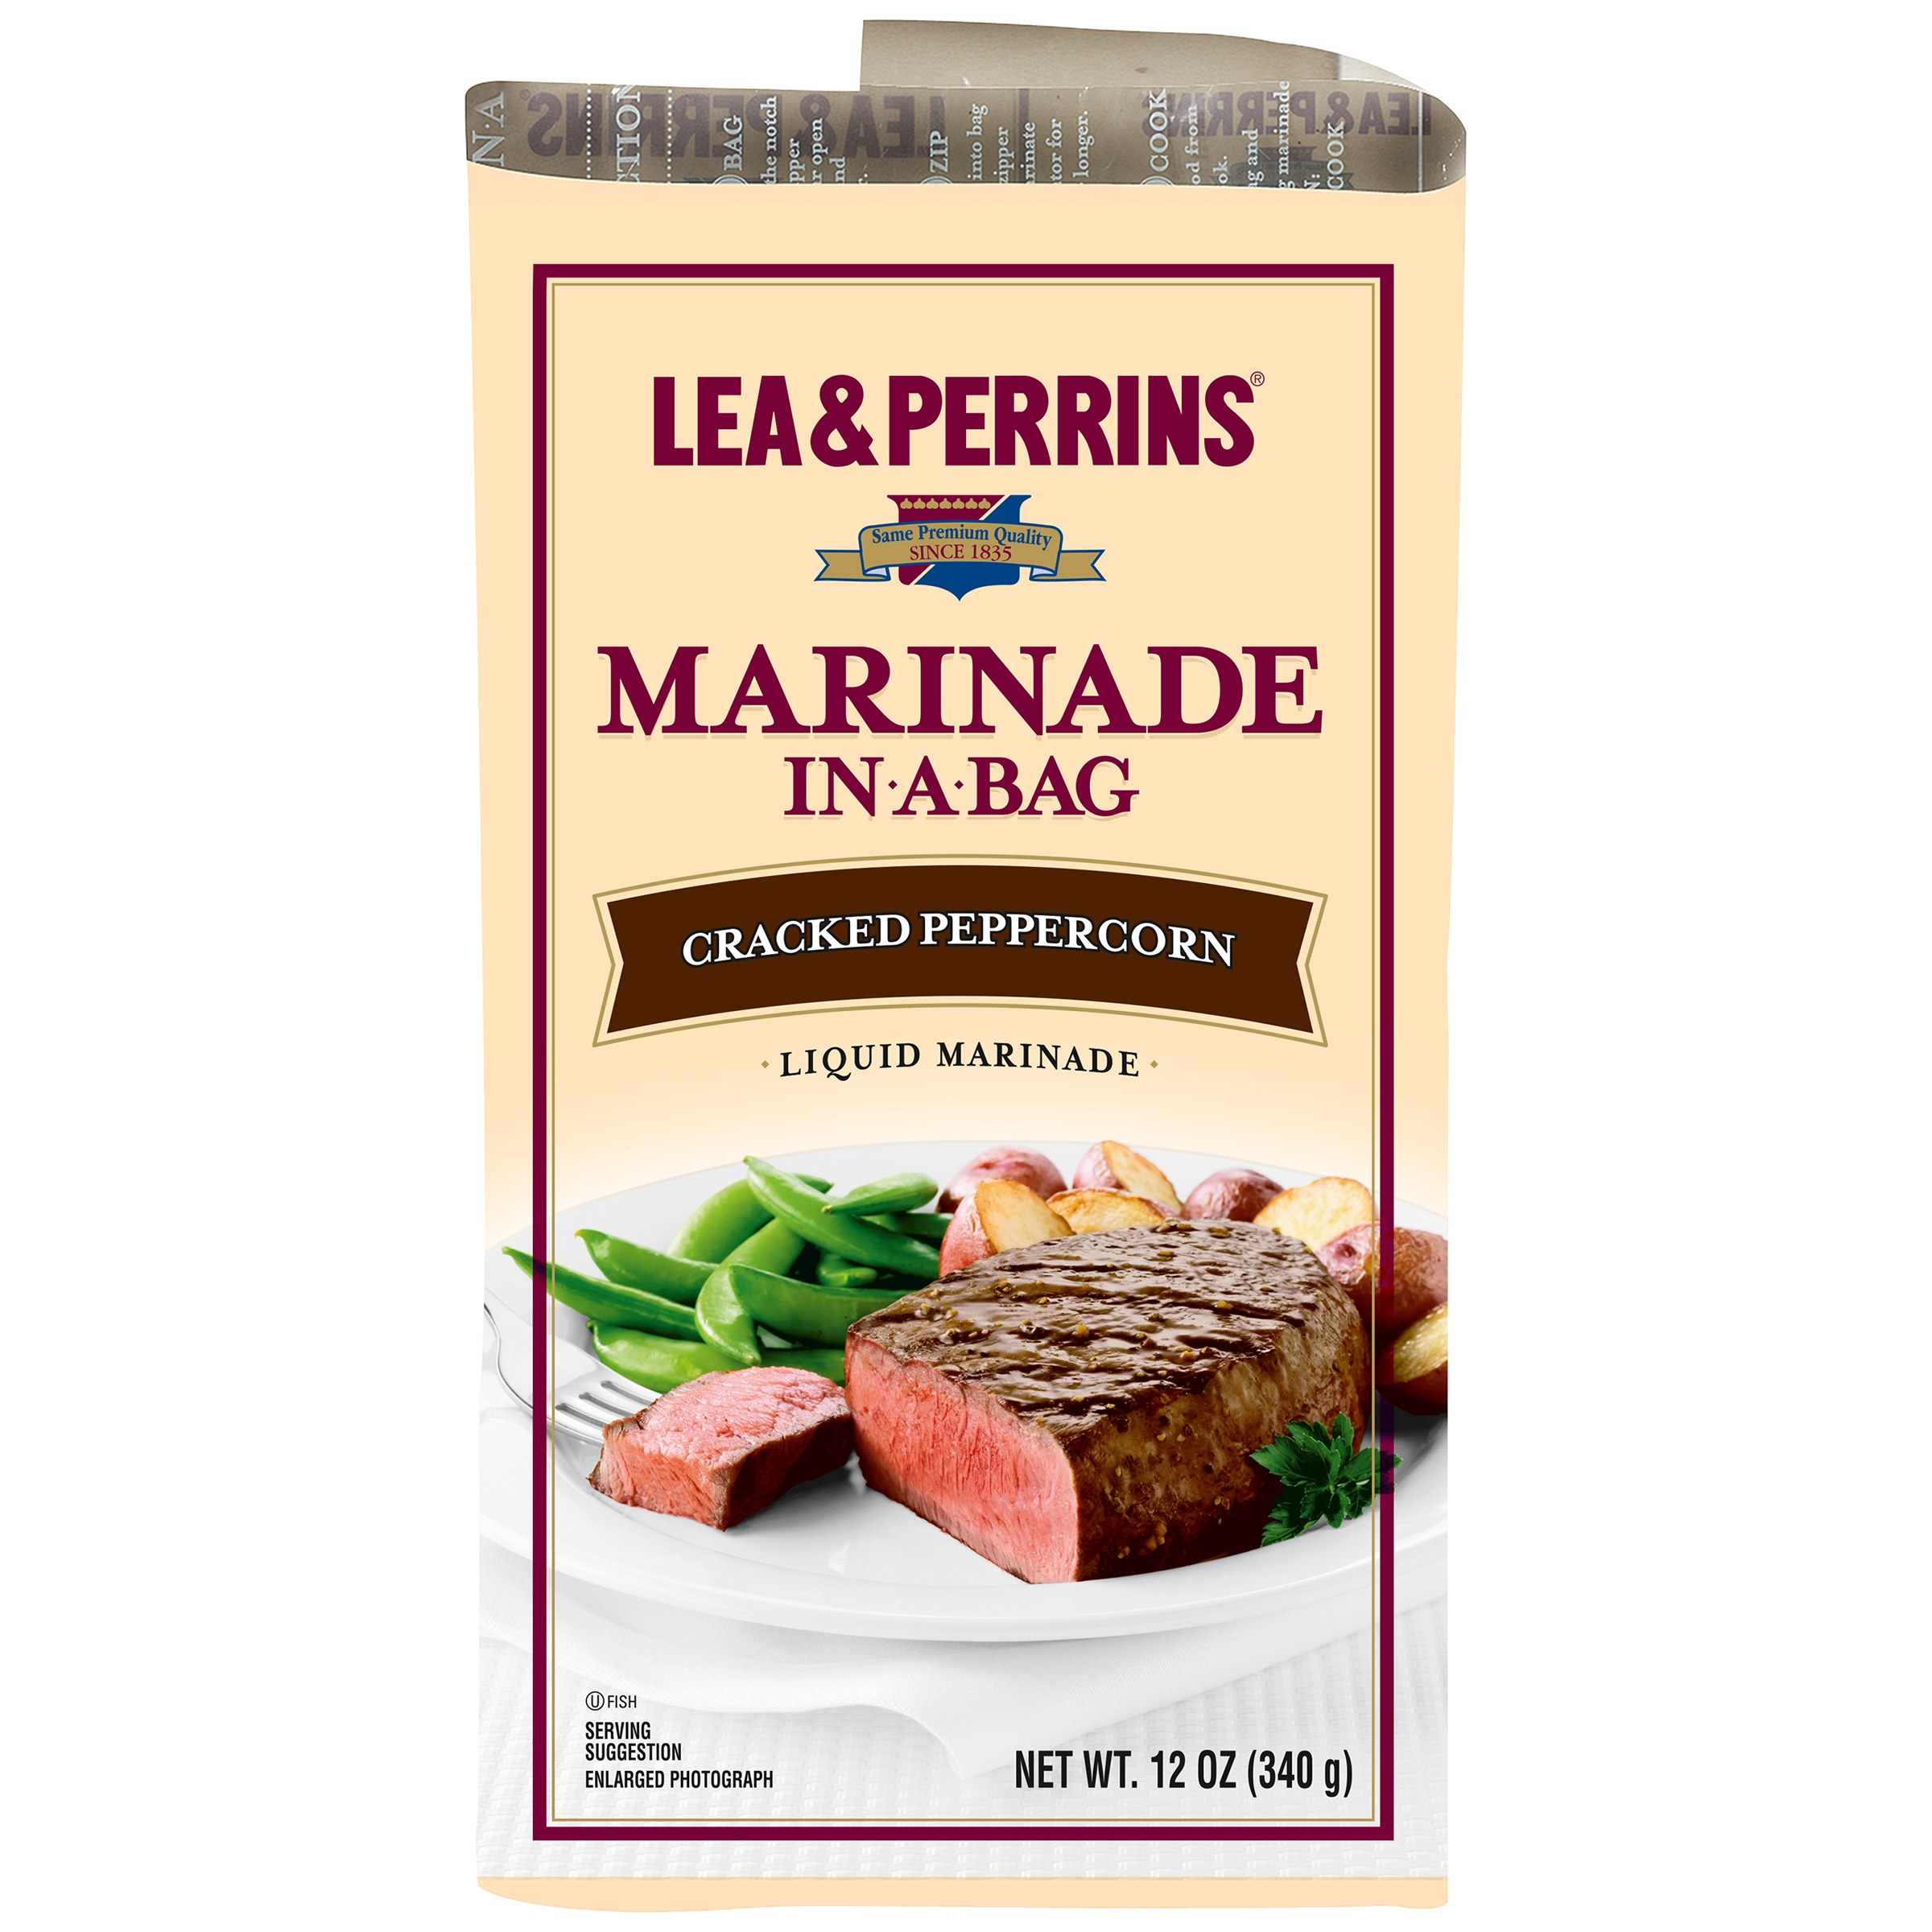 Lea & Perrins® Cracked Peppercorn Marinade In-a-Bag 12 oz. Bag